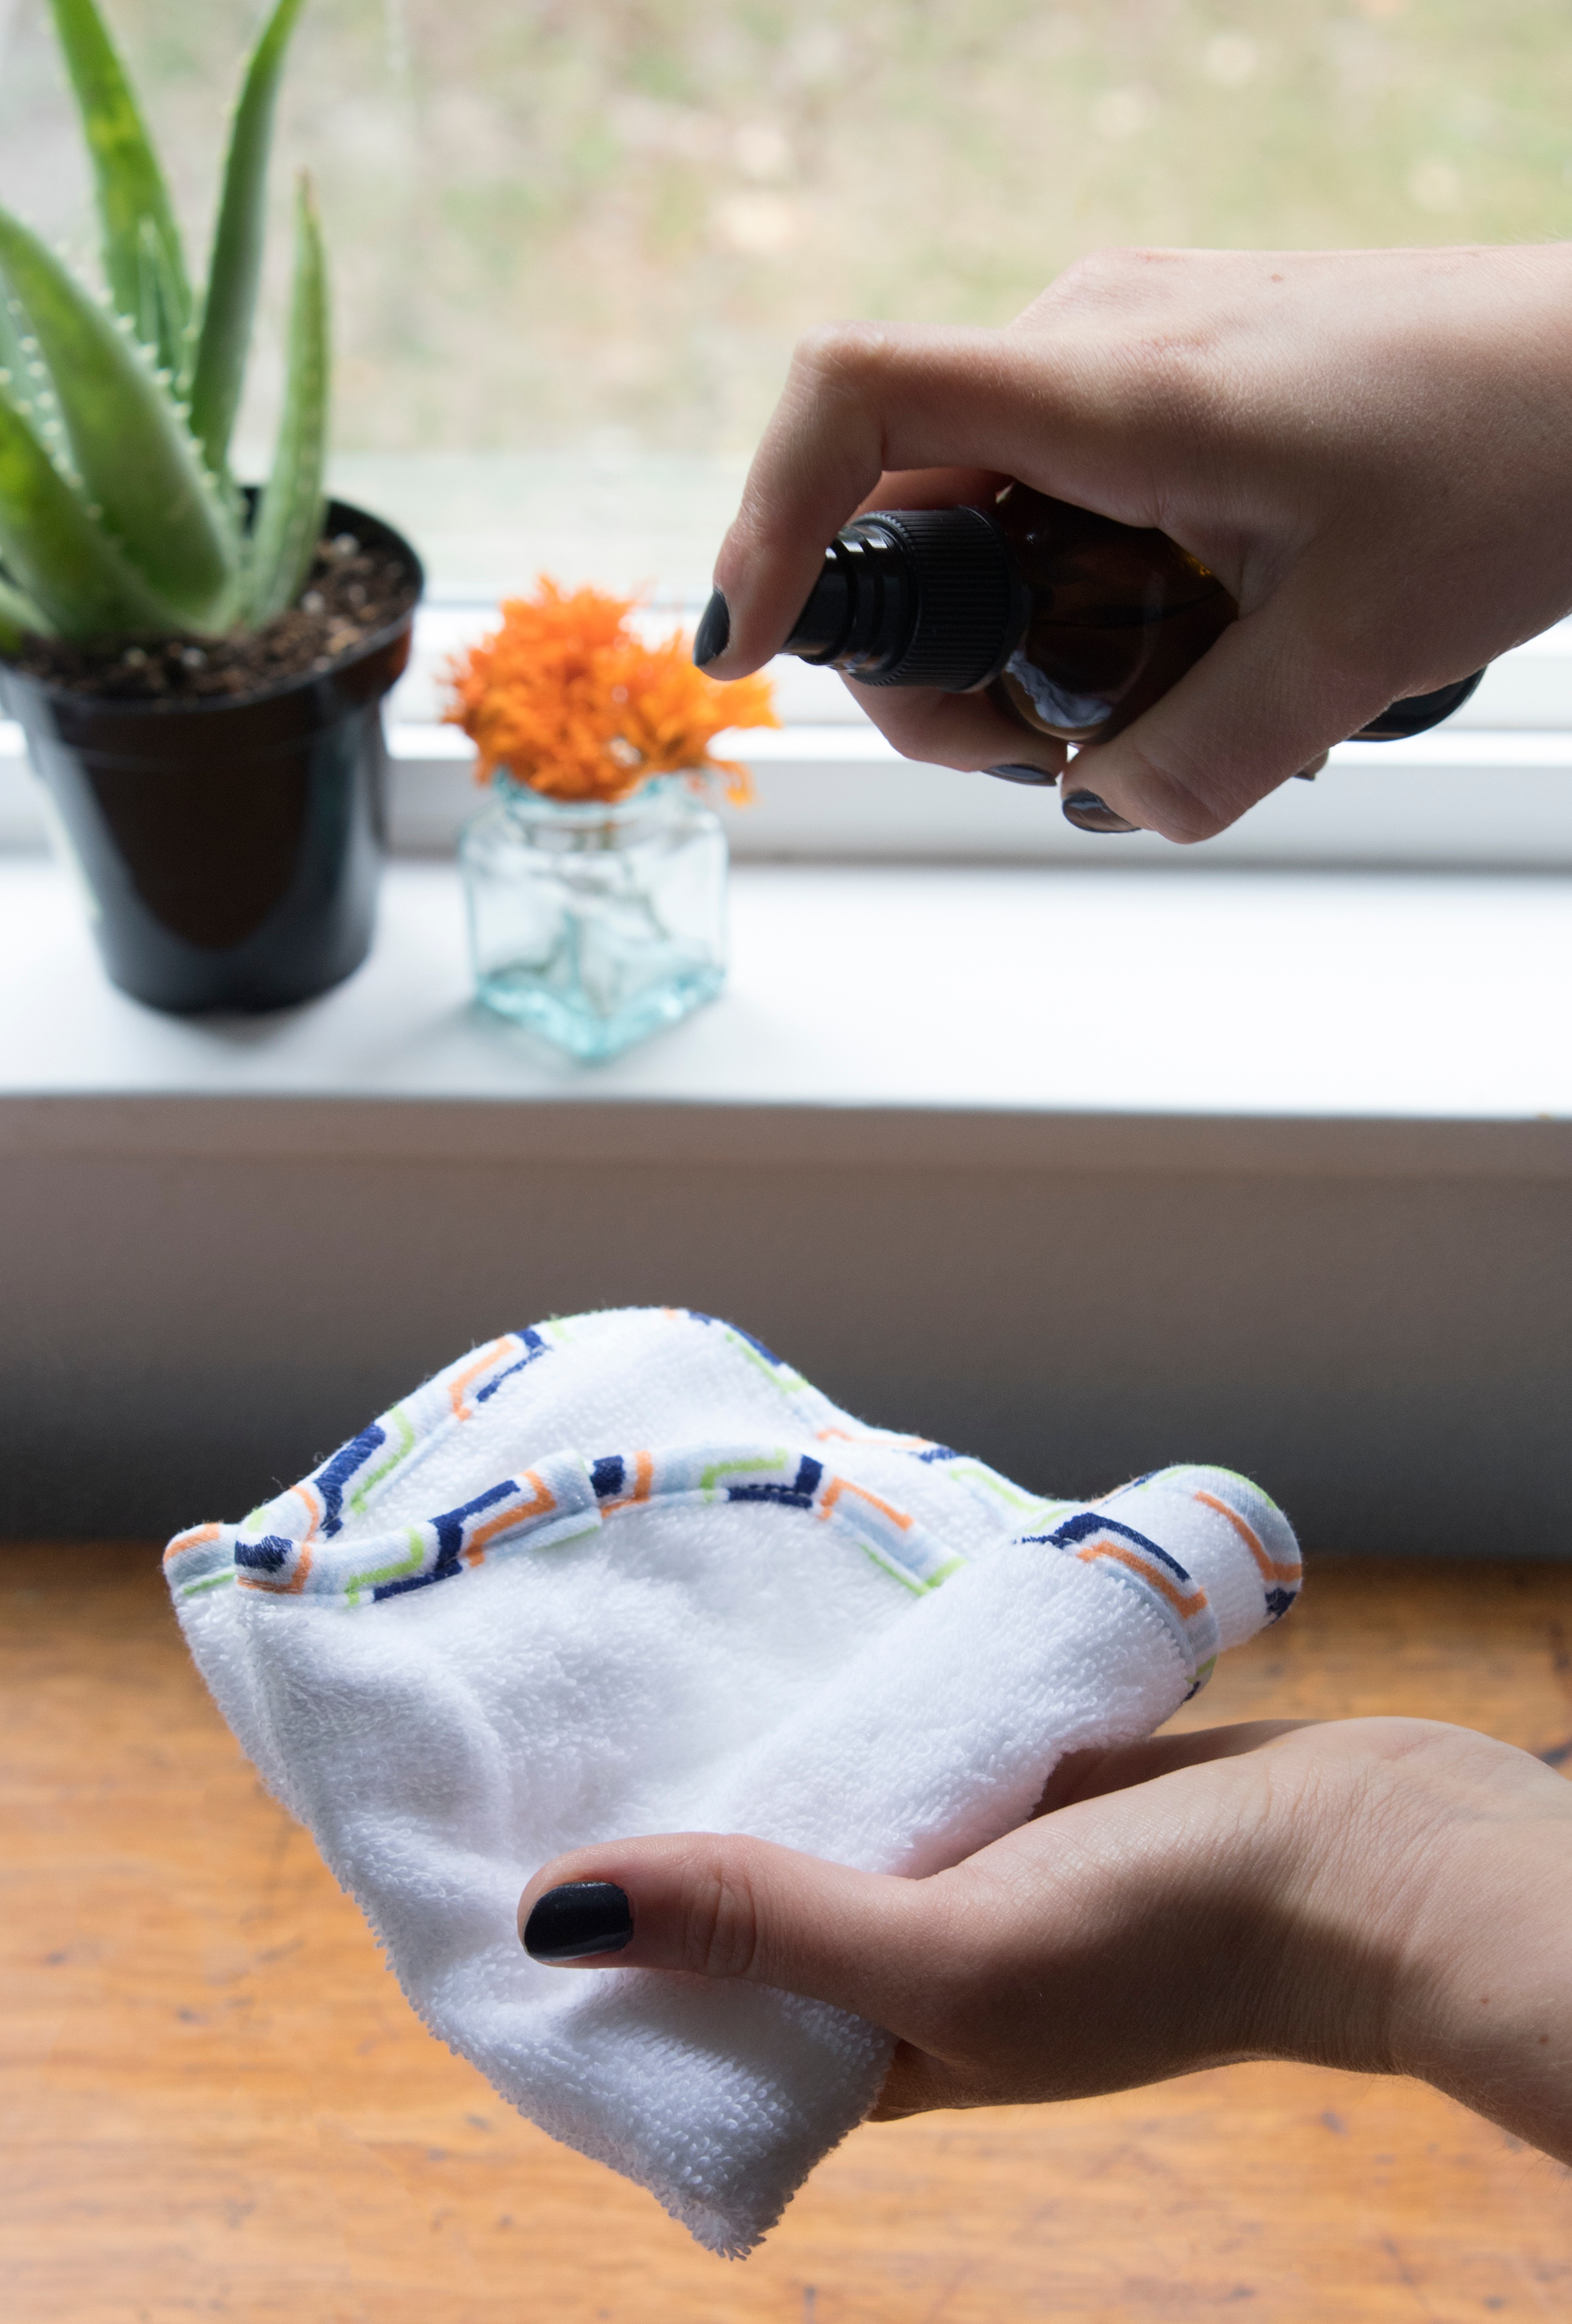 Hand holding baby towel in one hand and baby cleansing spray in the other to make homemade baby wipes